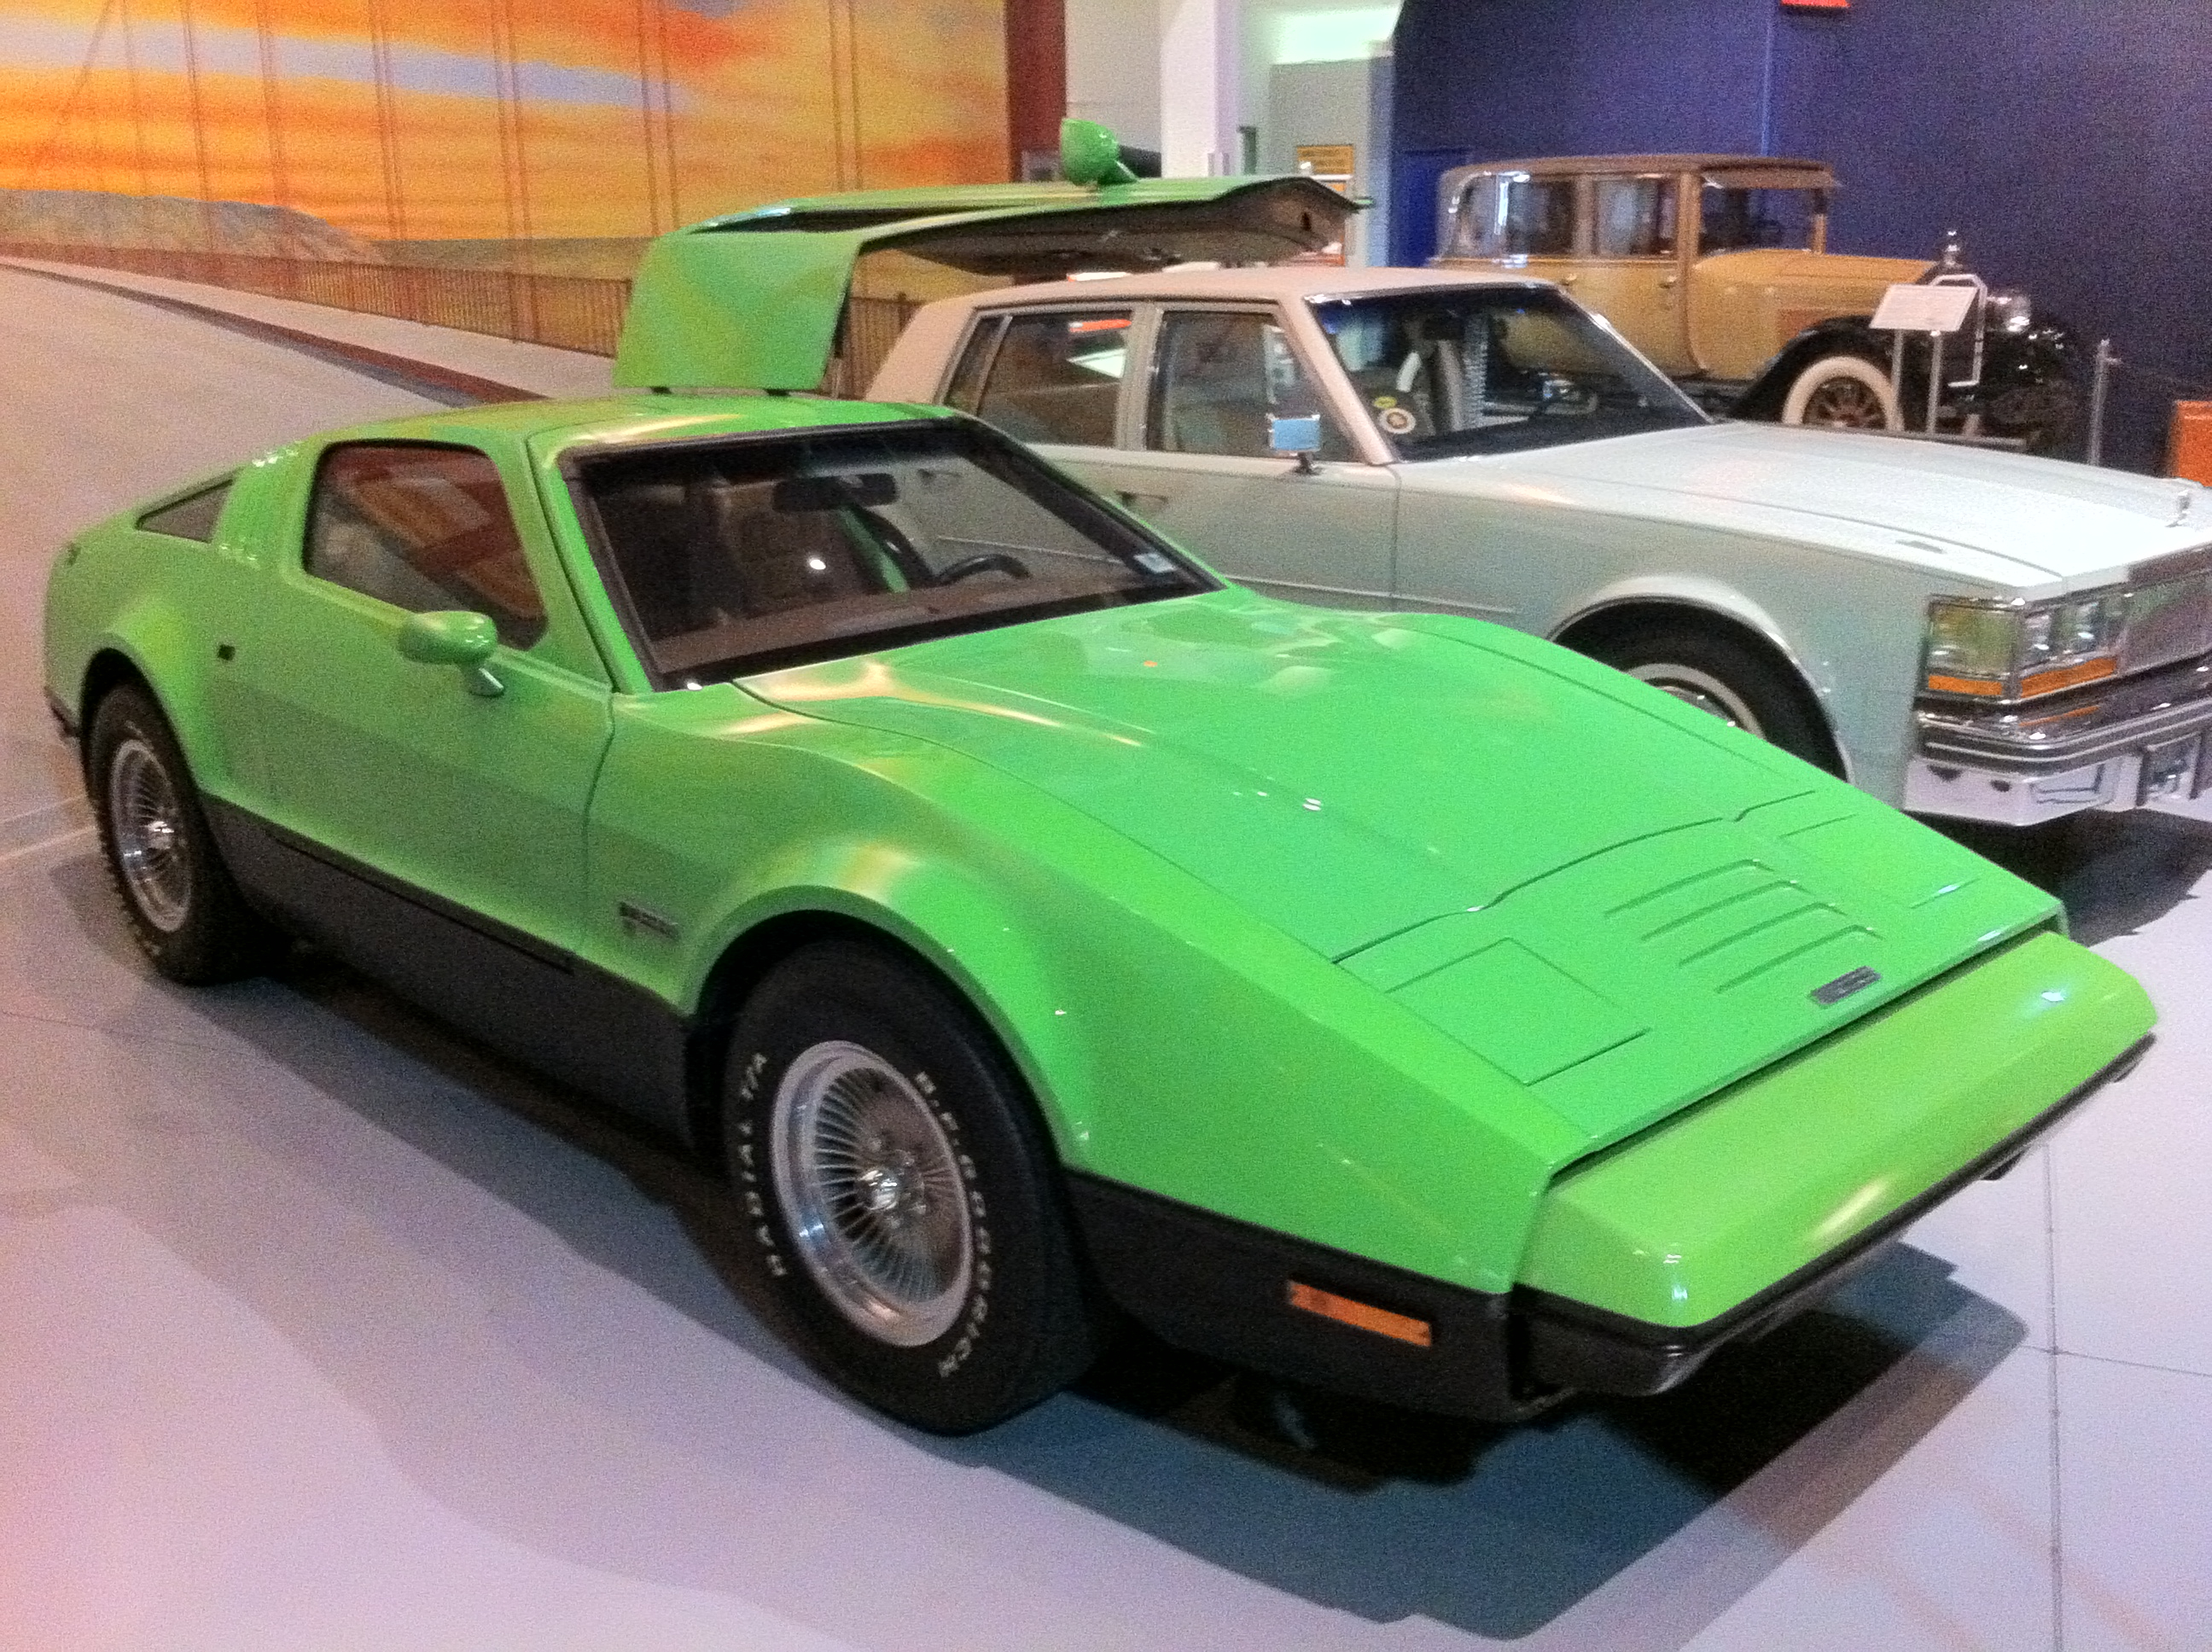 File AACA Museum Bricklin Green Rjpg Wikimedia Commons - Aaca museum car show